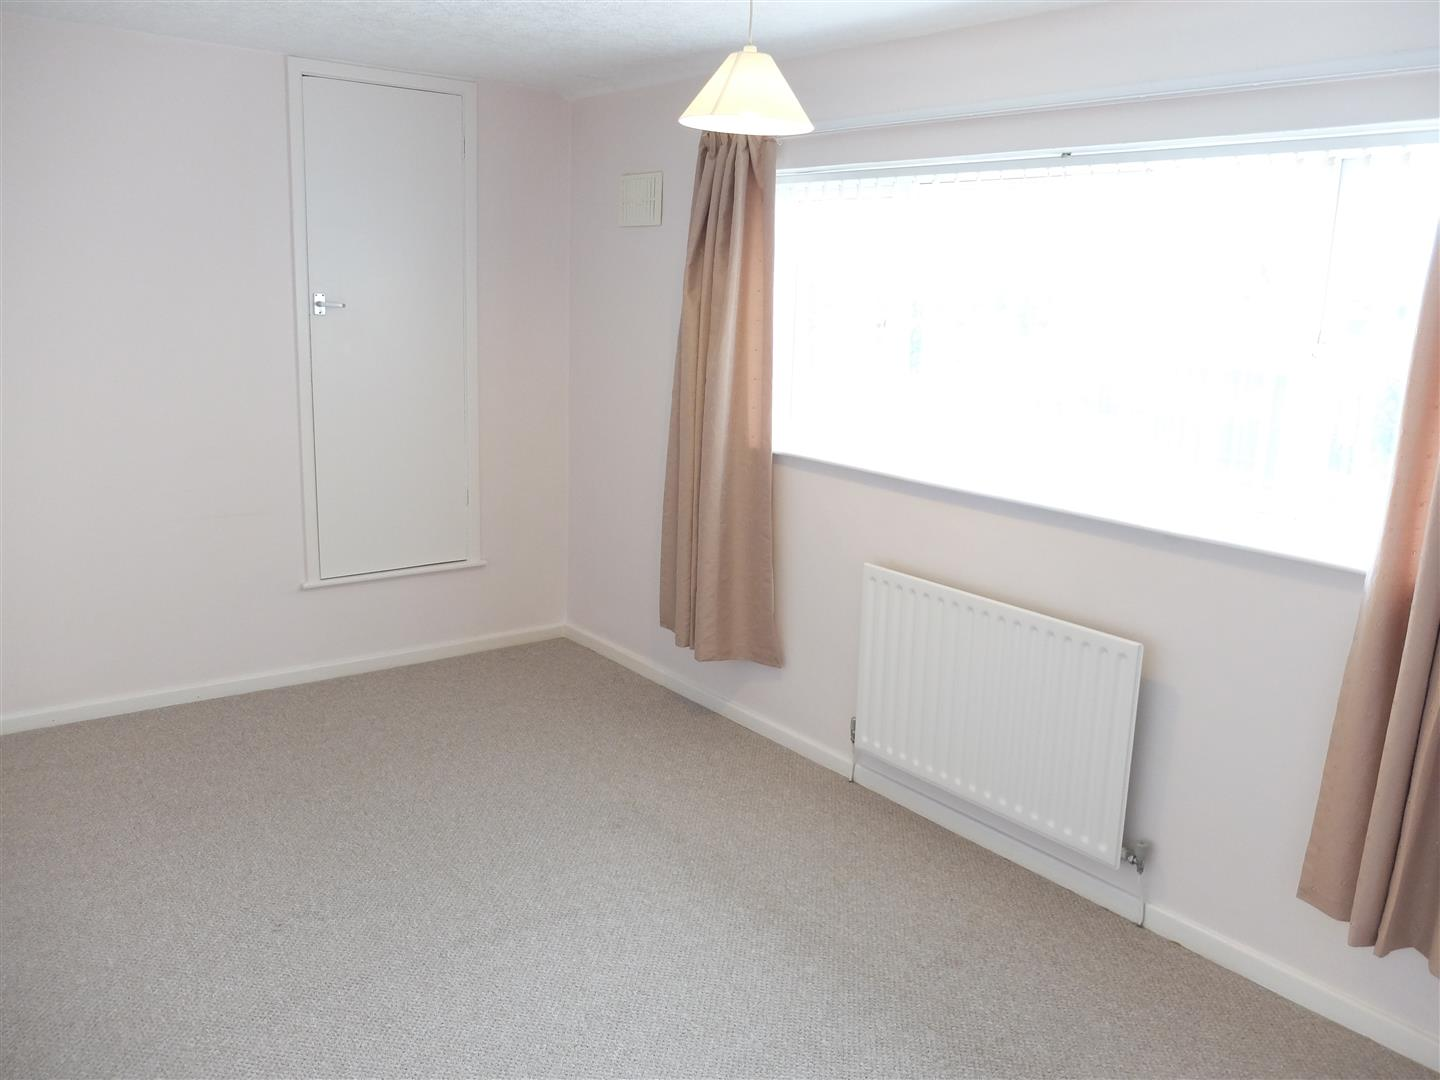 79 Westrigg Road Carlisle 3 Bedrooms House - Mid Terrace For Sale 110,000